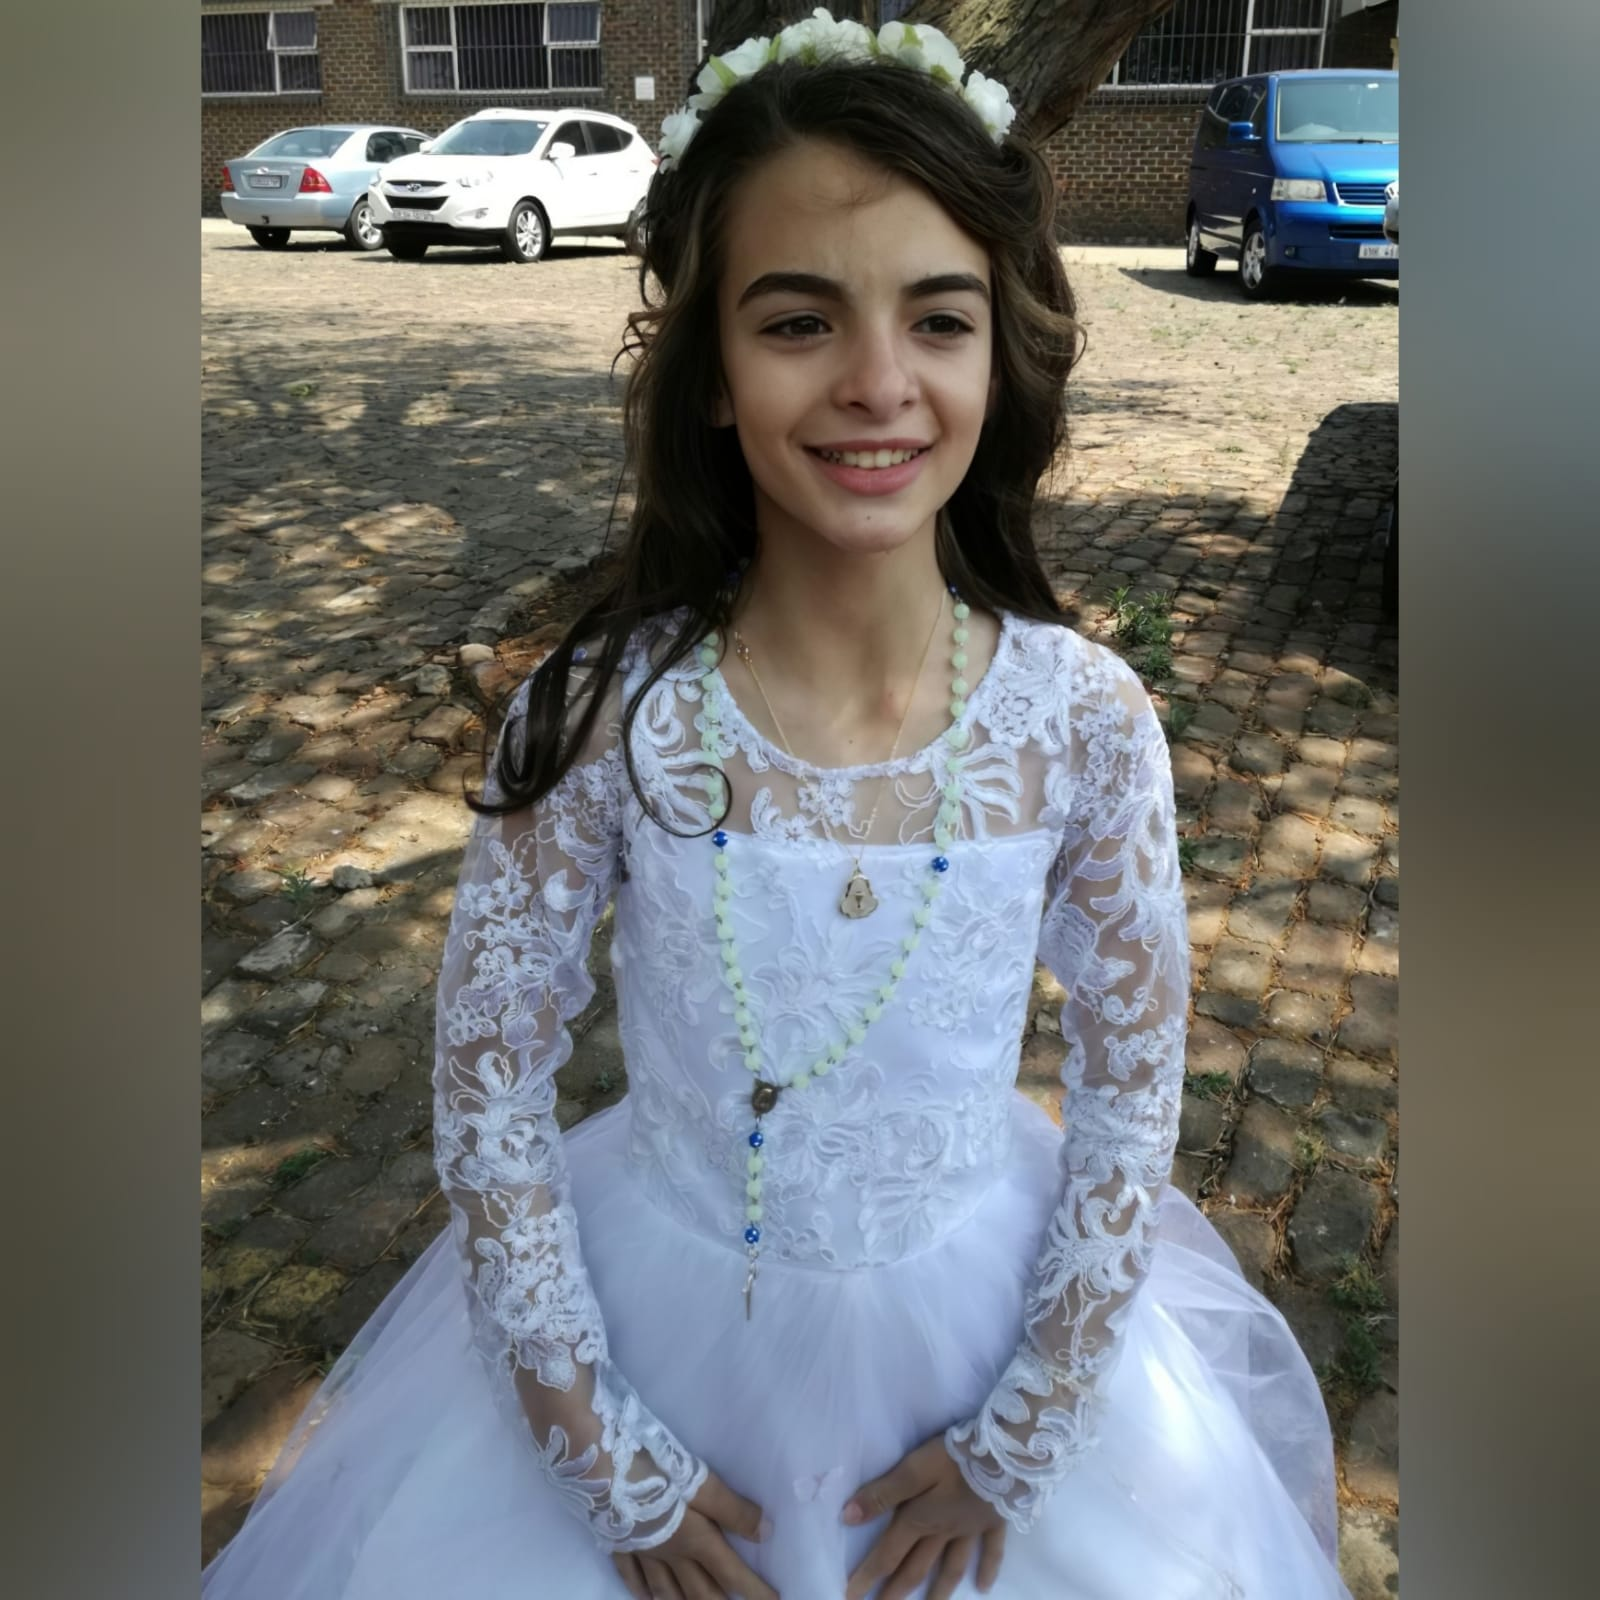 White holy communion ball gown dress 1 white holy communion ball gown dress. With a lace bodice. Long lace sleeves. Holy communion dress detailed with butterflies.